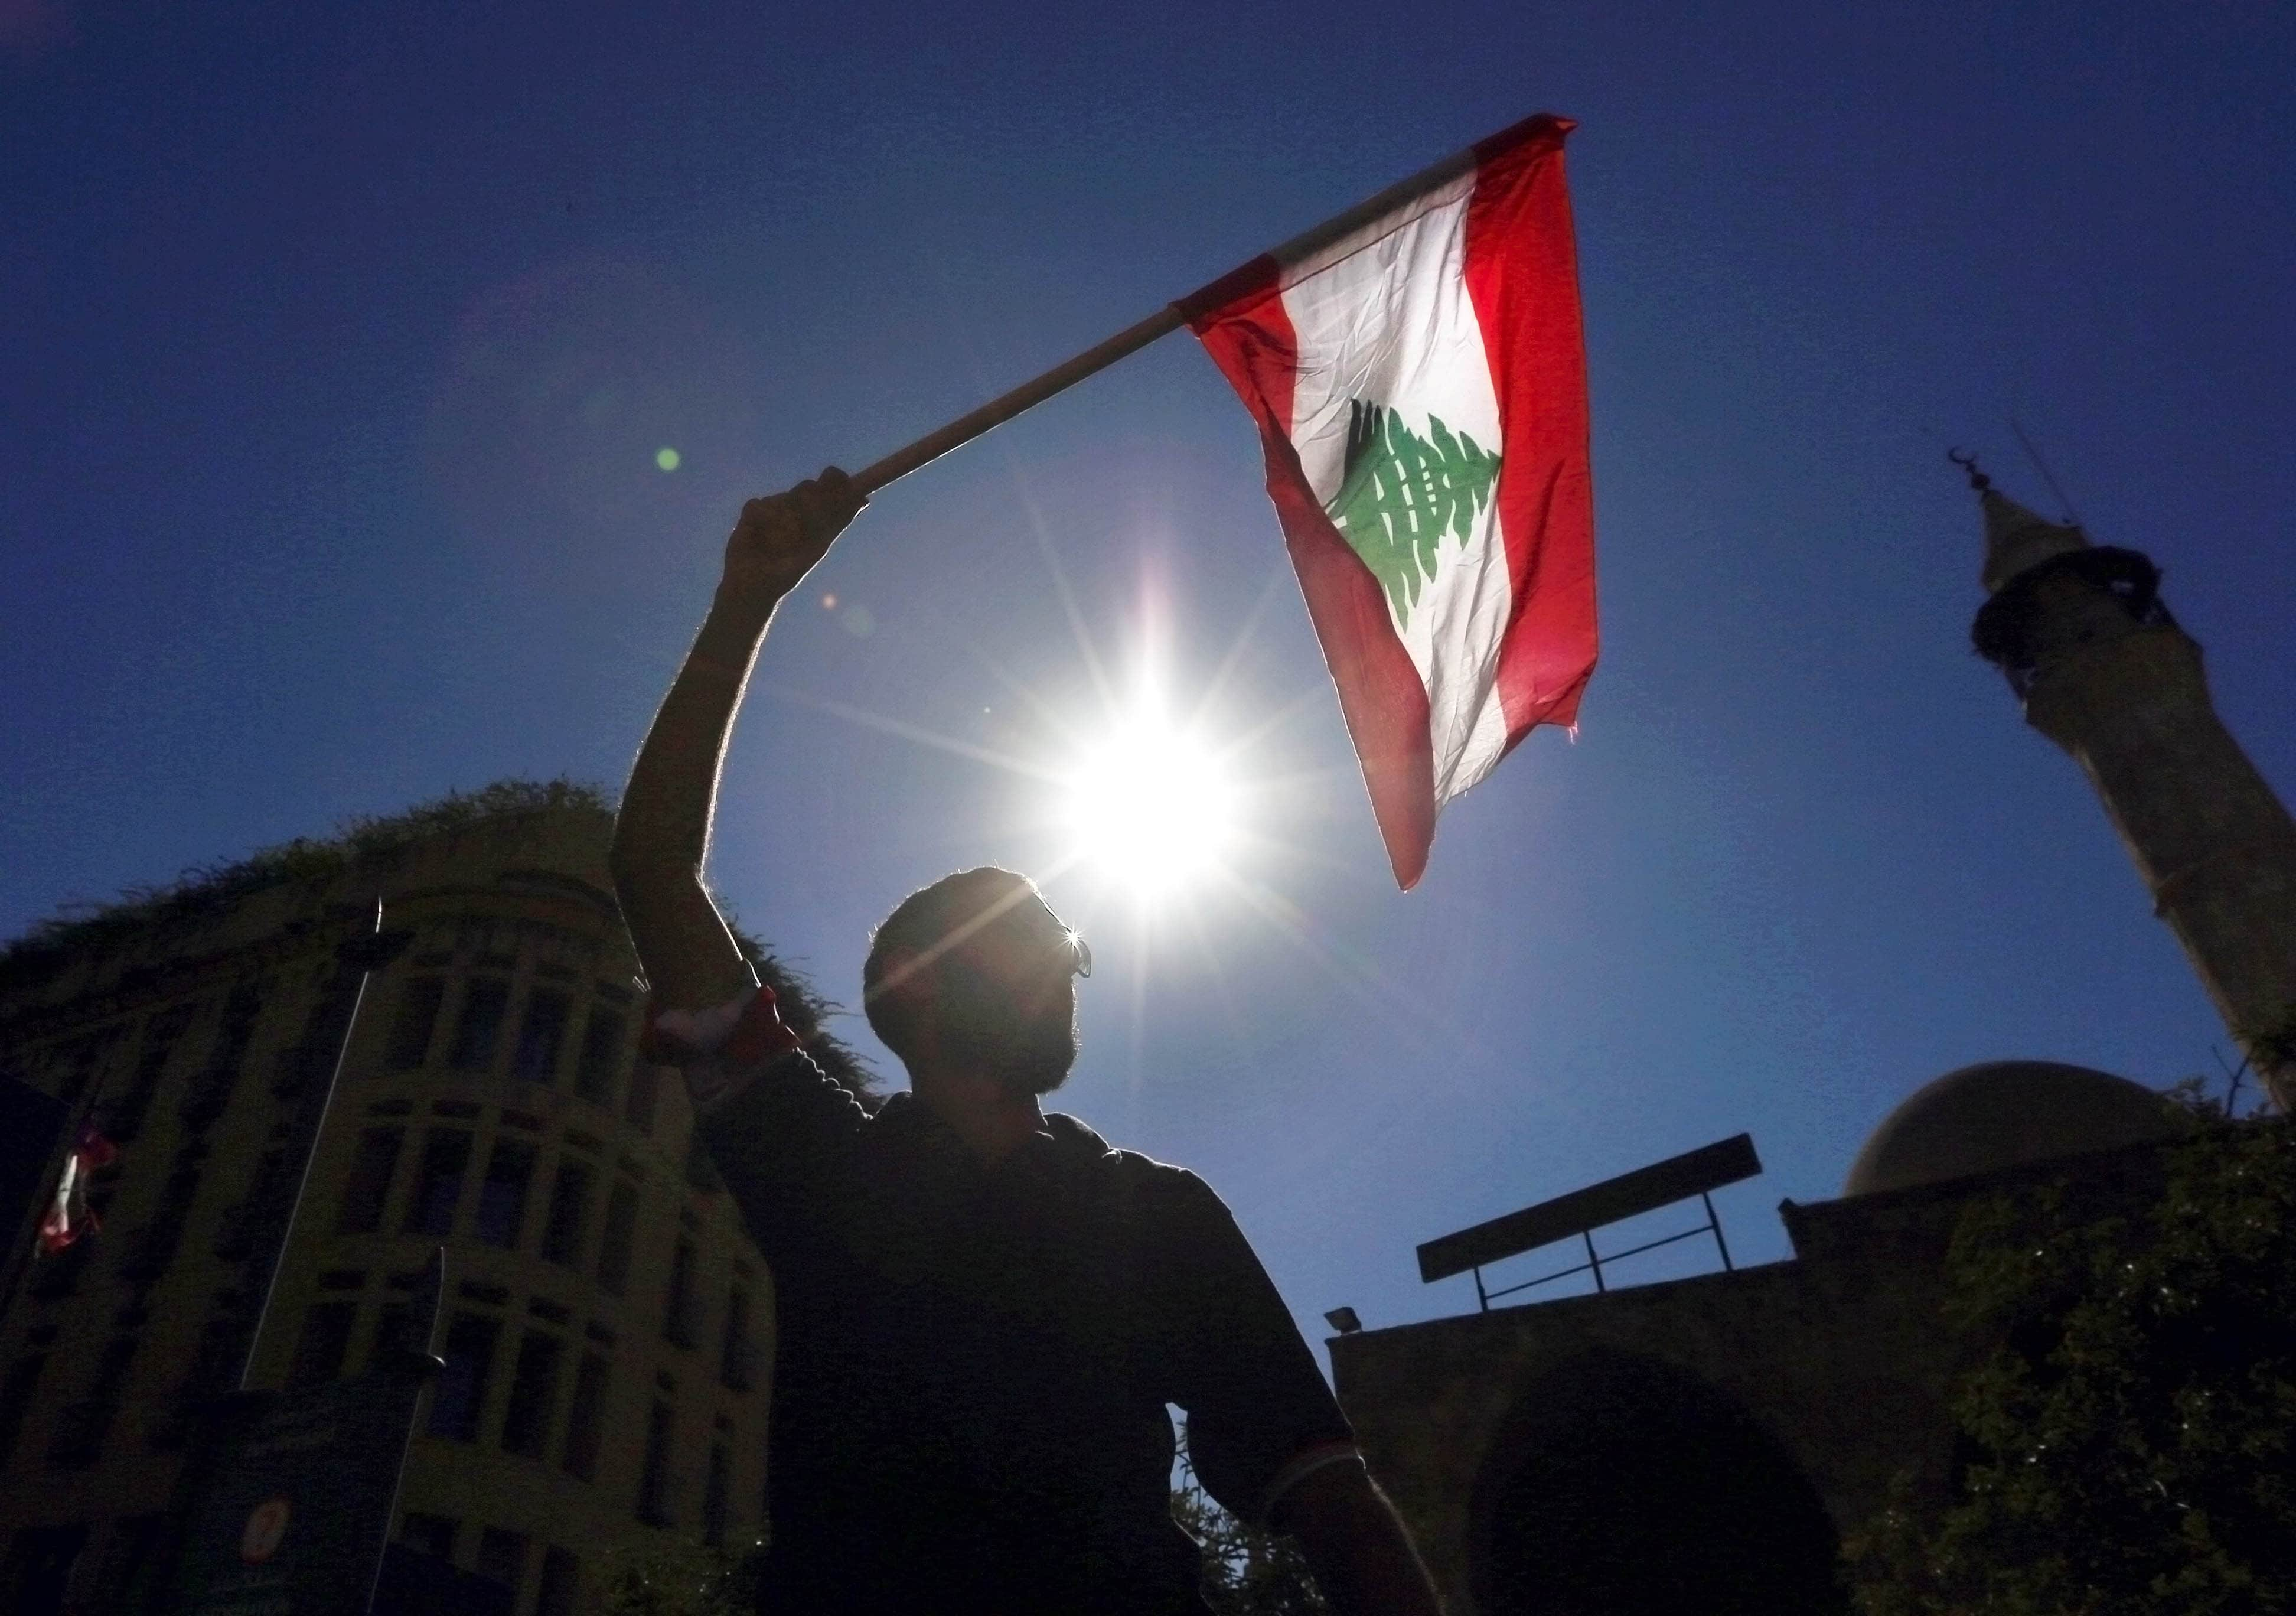 A man waves a Lebanese flag during a protest near the parliament building in downtown Beirut, Lebanon, AP Photo/Bilal Hussein